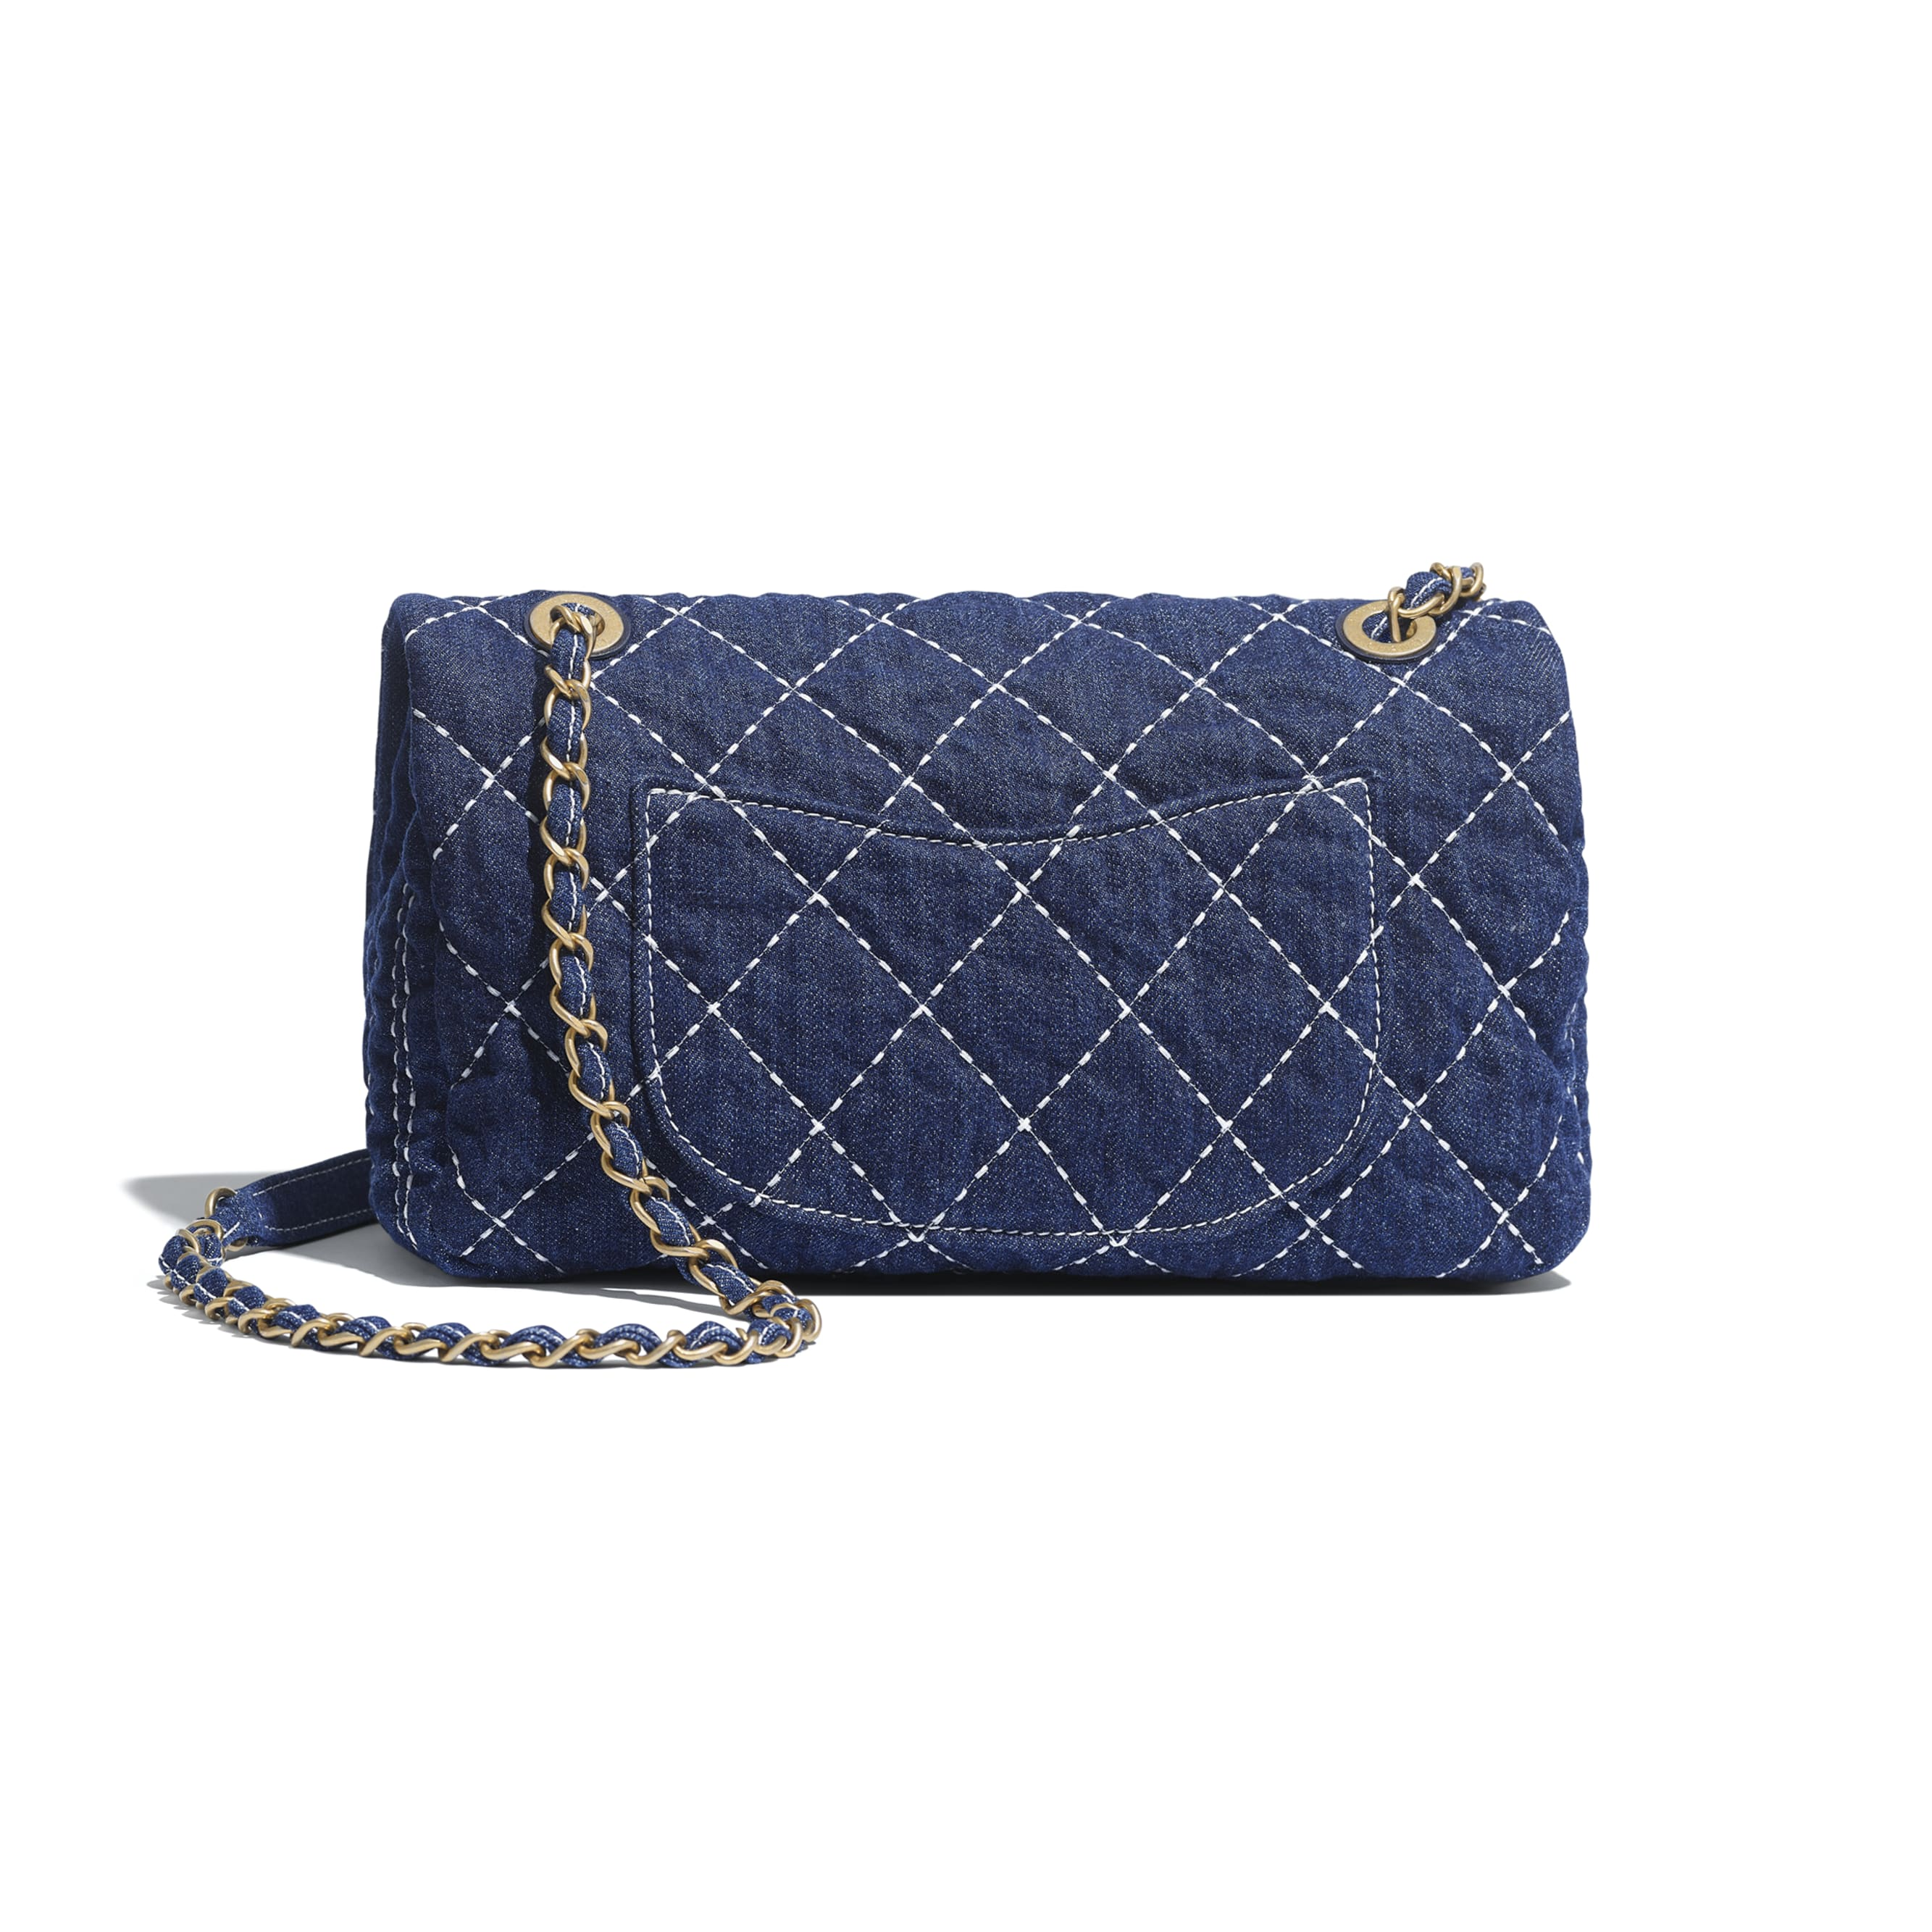 Flap Bag - Blue - Denim & Gold Metal - CHANEL - Alternative view - see standard sized version